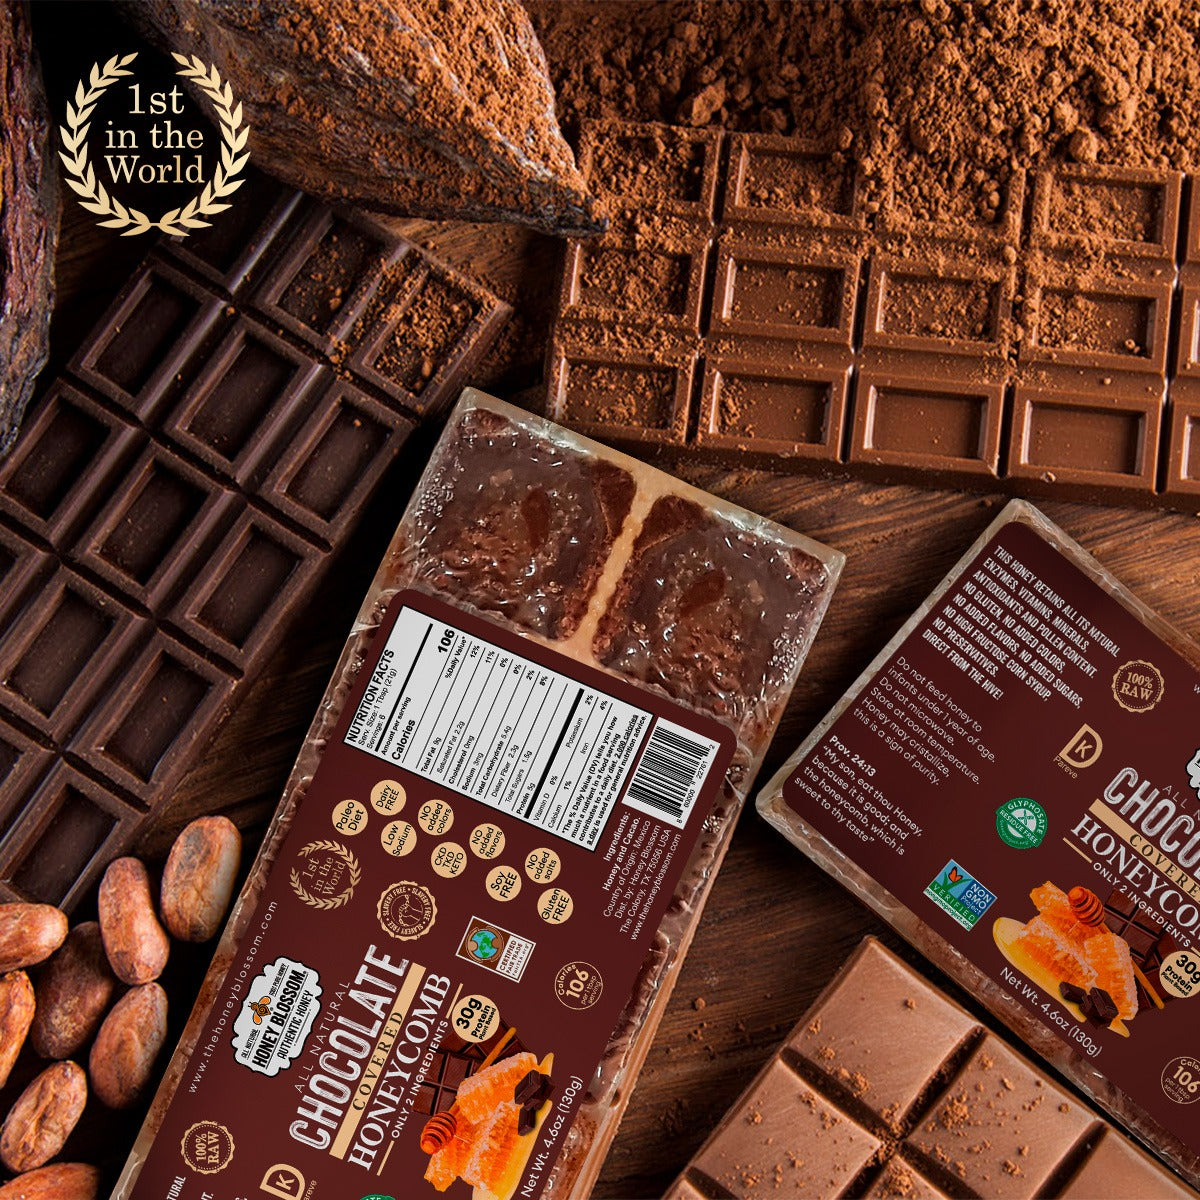 Image of 2 Chocolate Covered 100% RAW Honeycomb Snack Size, 10 Servings on a wooden table, with chocolate bars on their sides along with cacao beans and cacao powder